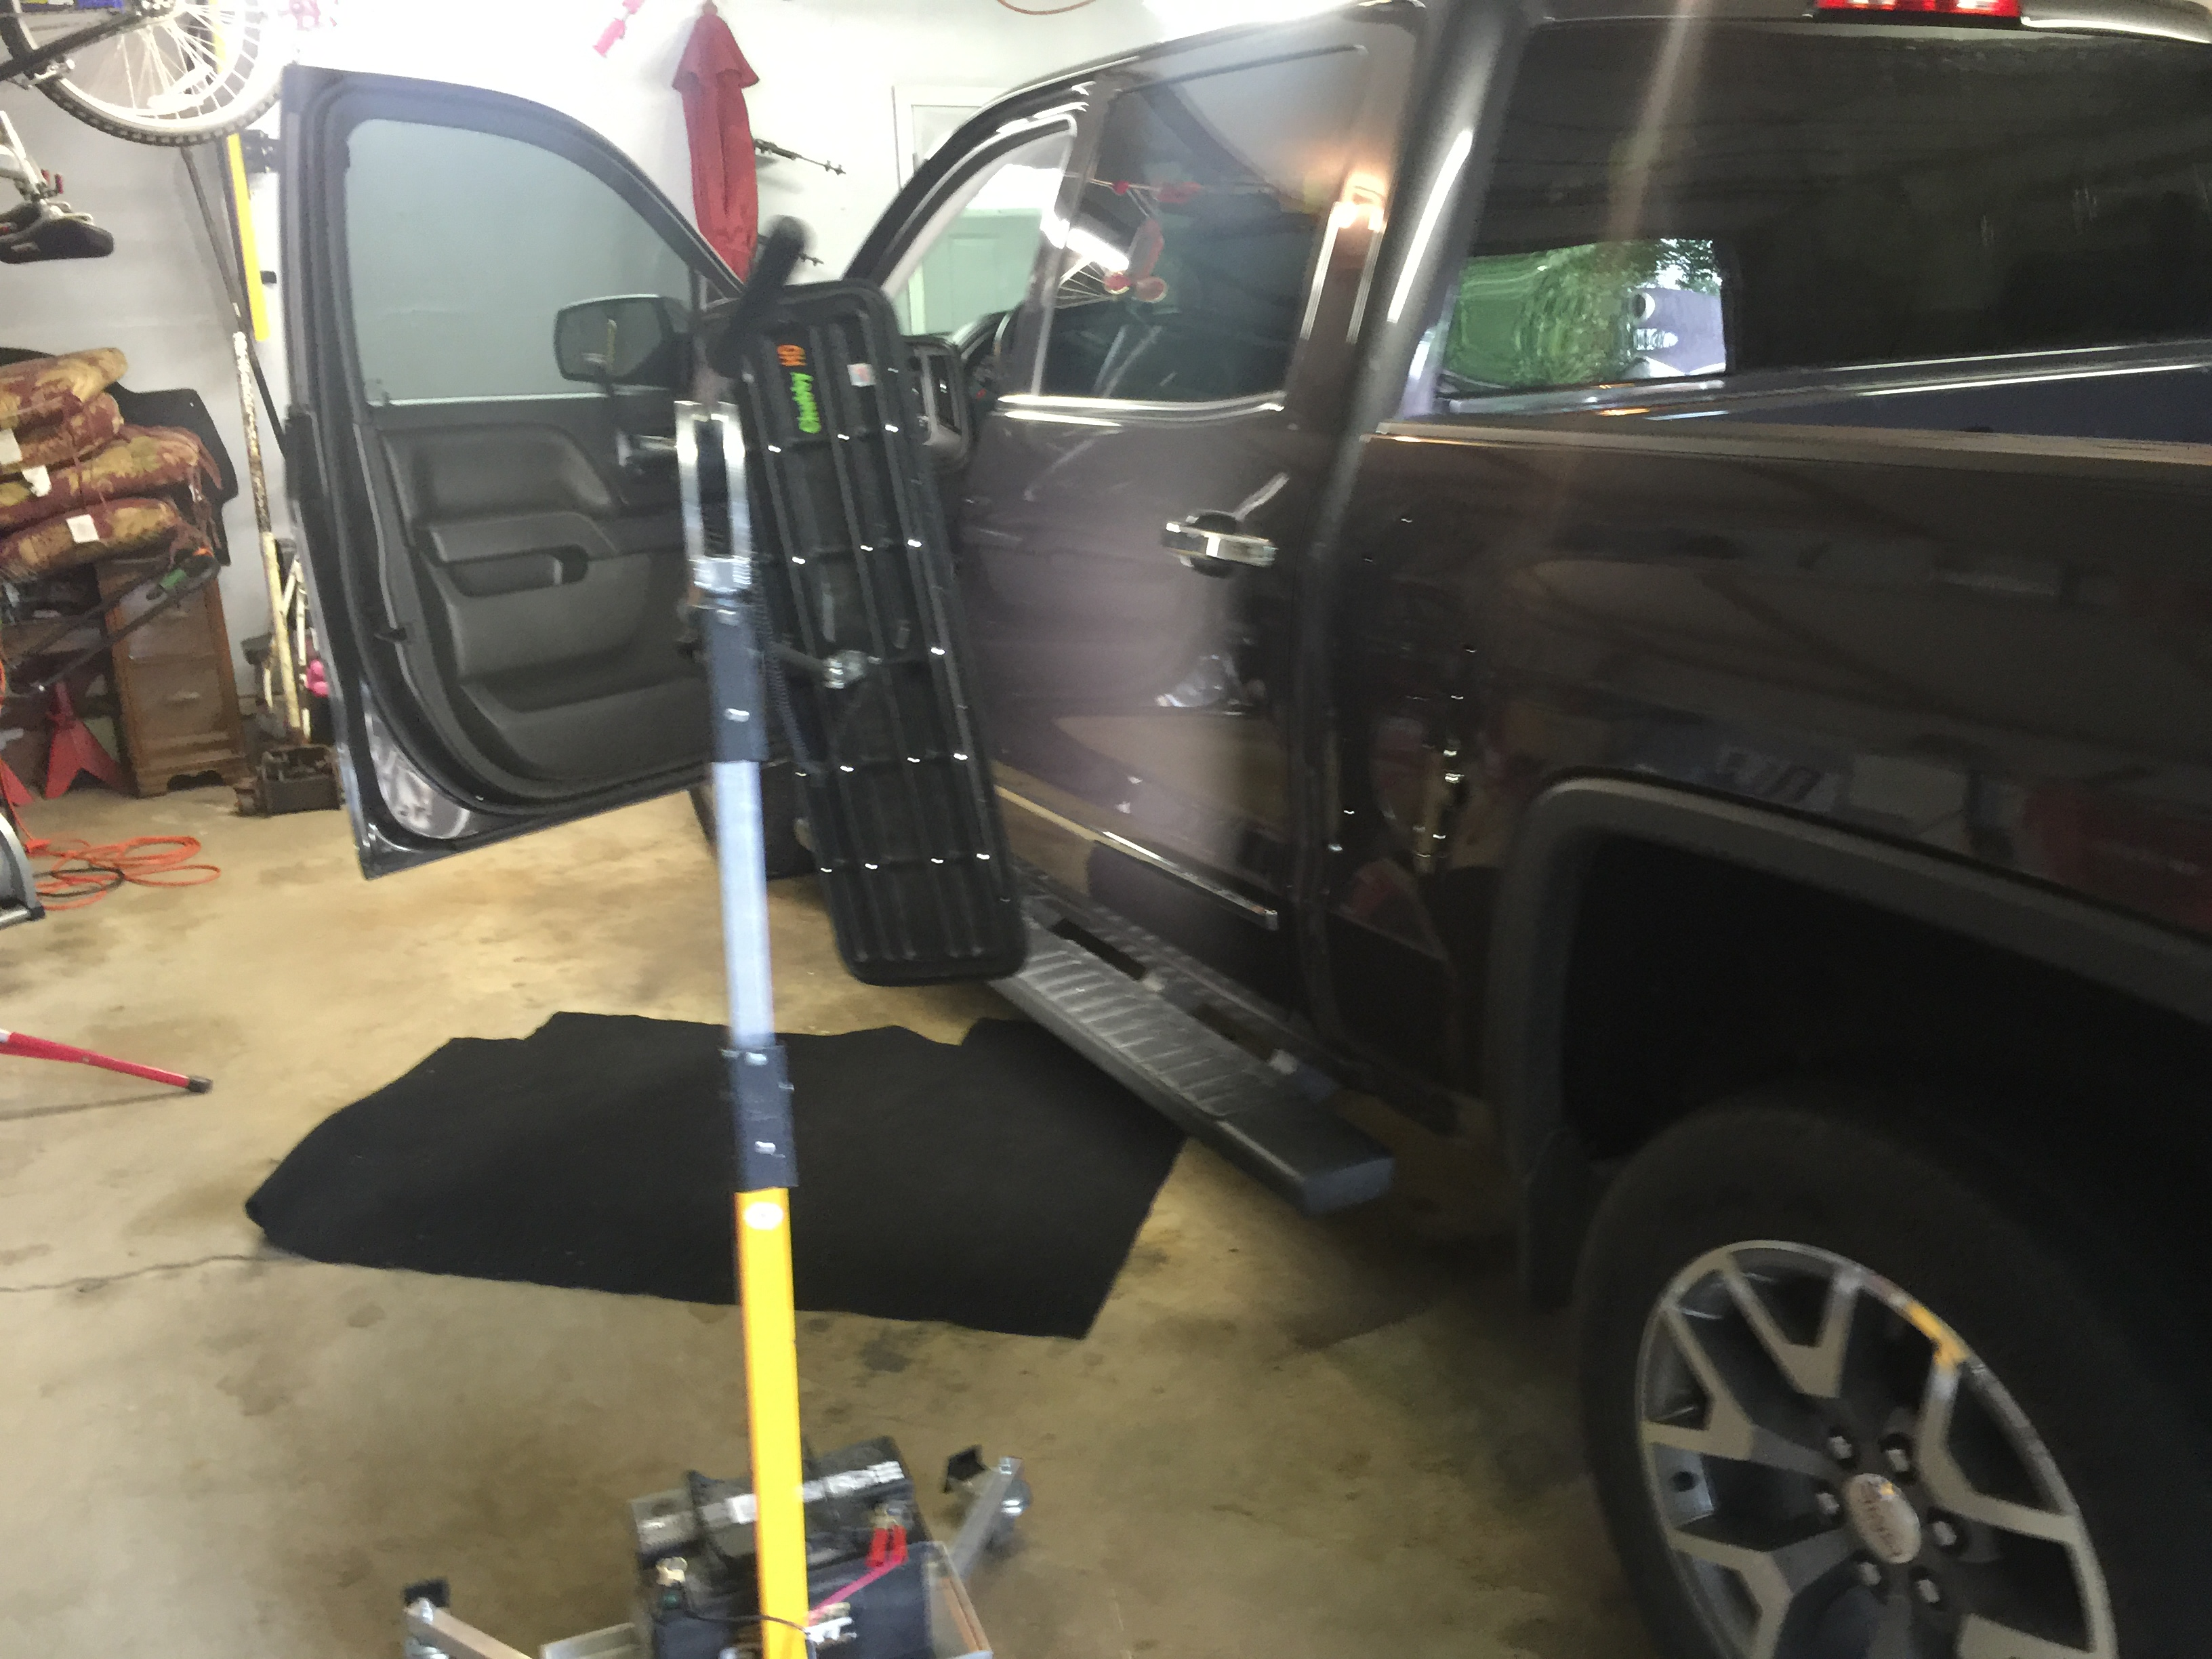 2014 GMC All Terrain Dent Removal, Springfield, IL. Paintless Dent Repair, http://217dent.com